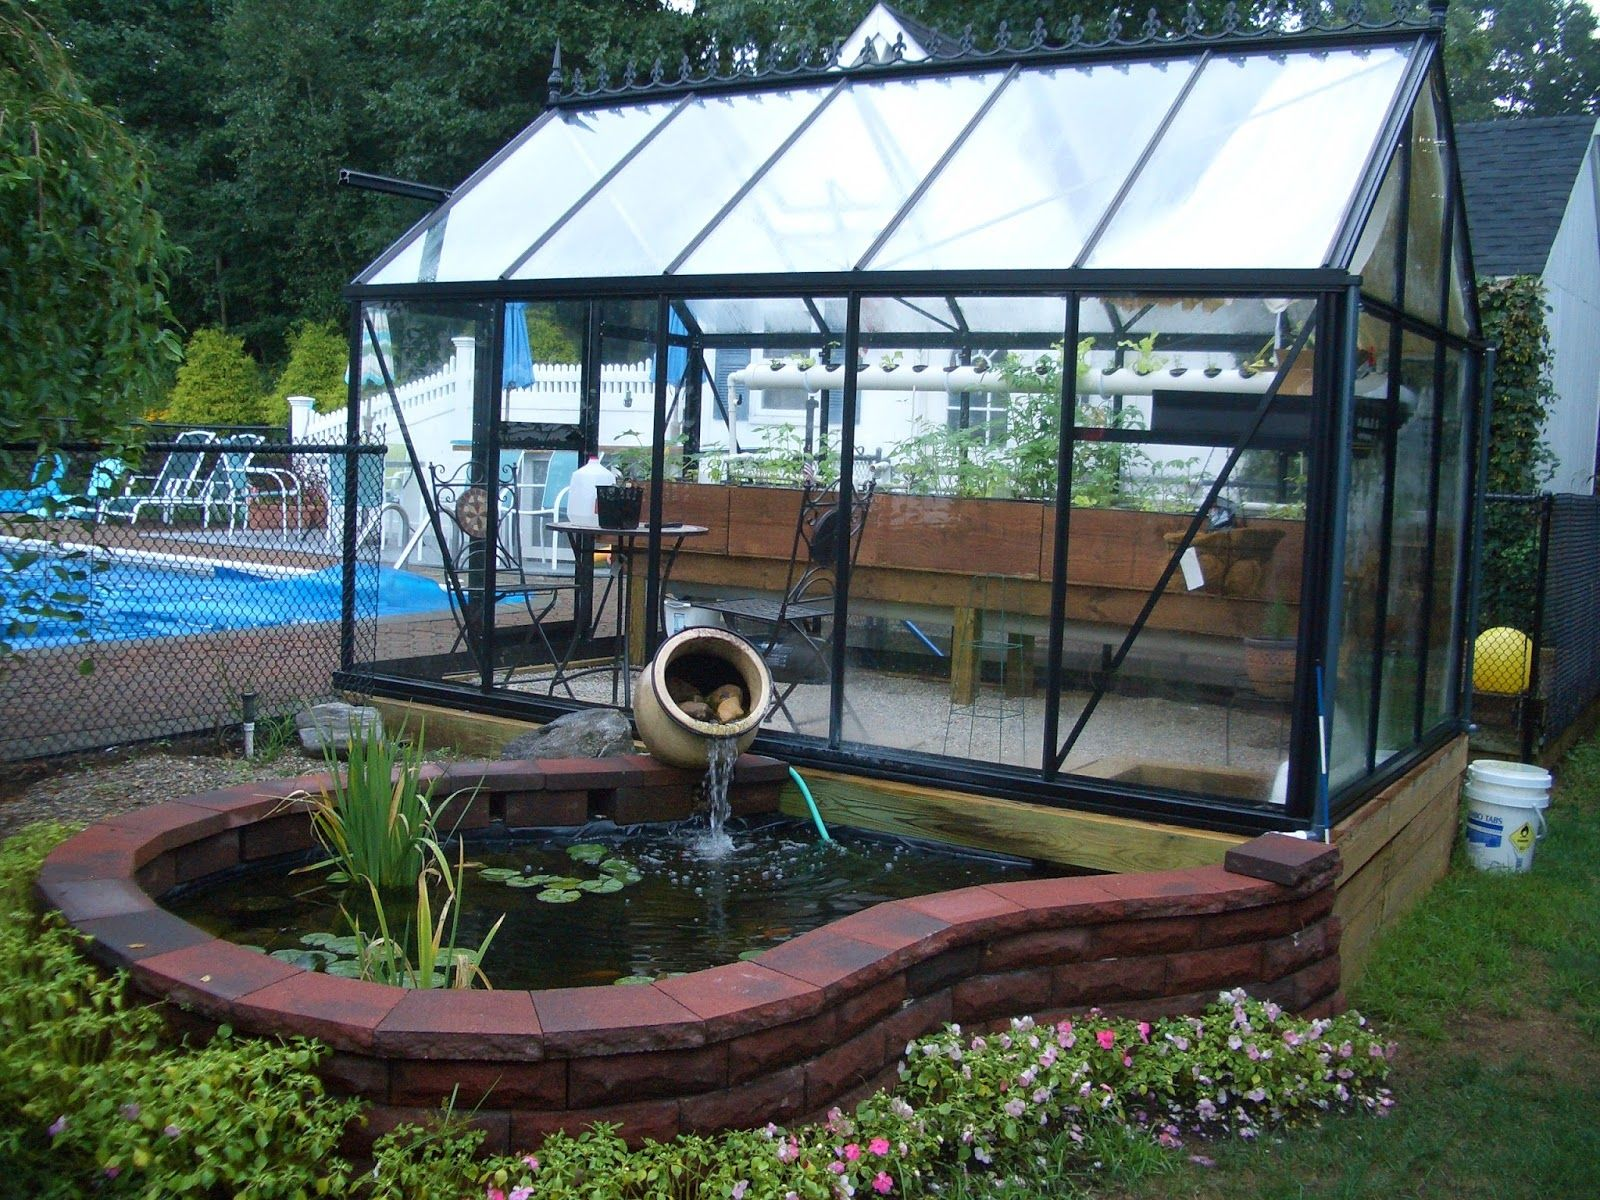 greenhouse aquaponics     we ended up incorporating an aquaponic system into our greenhouse and